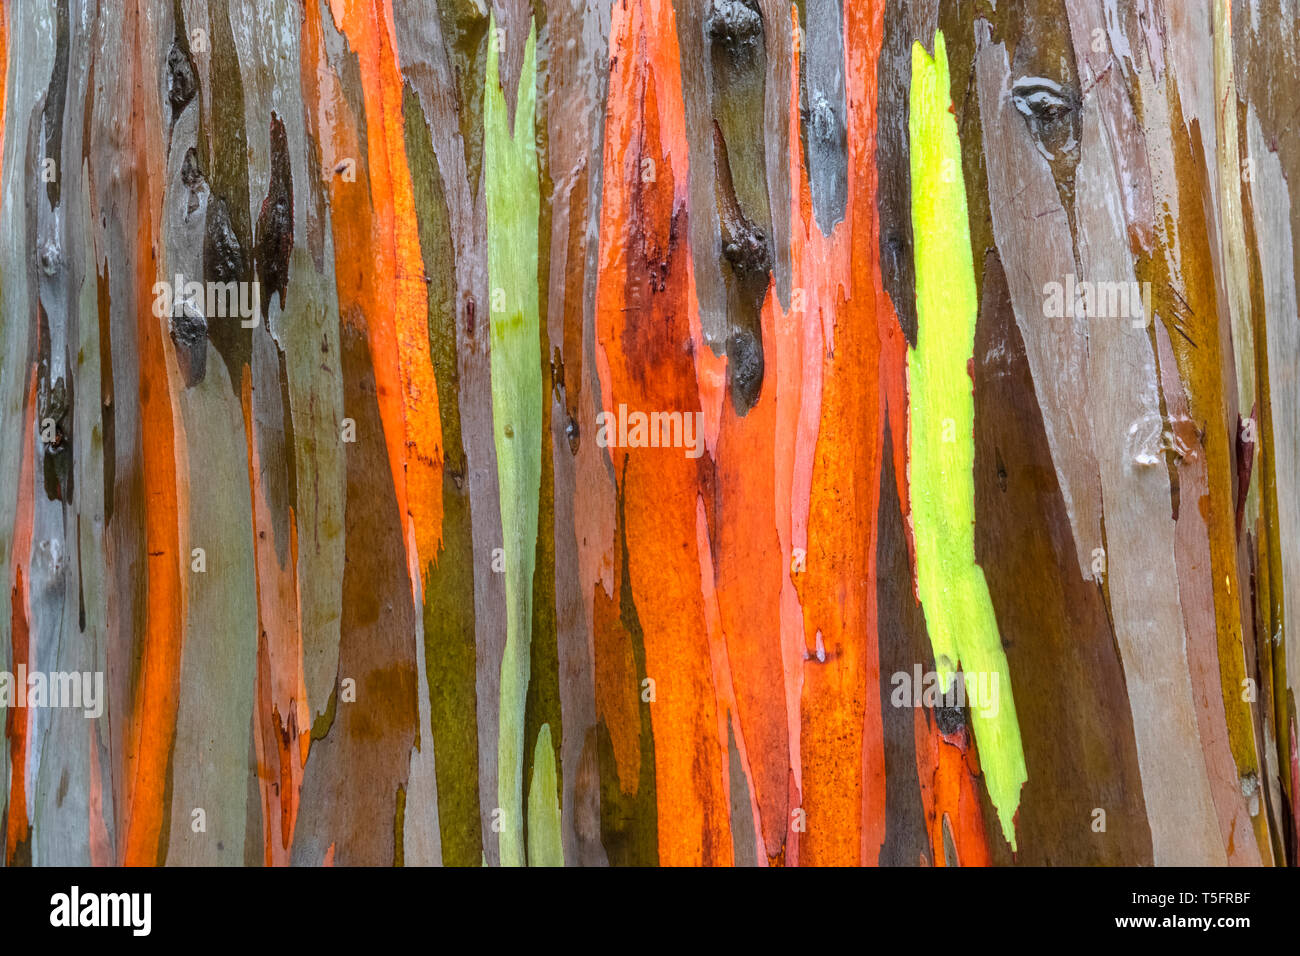 Detail of rainbow eucalyptus, Eucalyptus deglupta, close-up - Stock Image